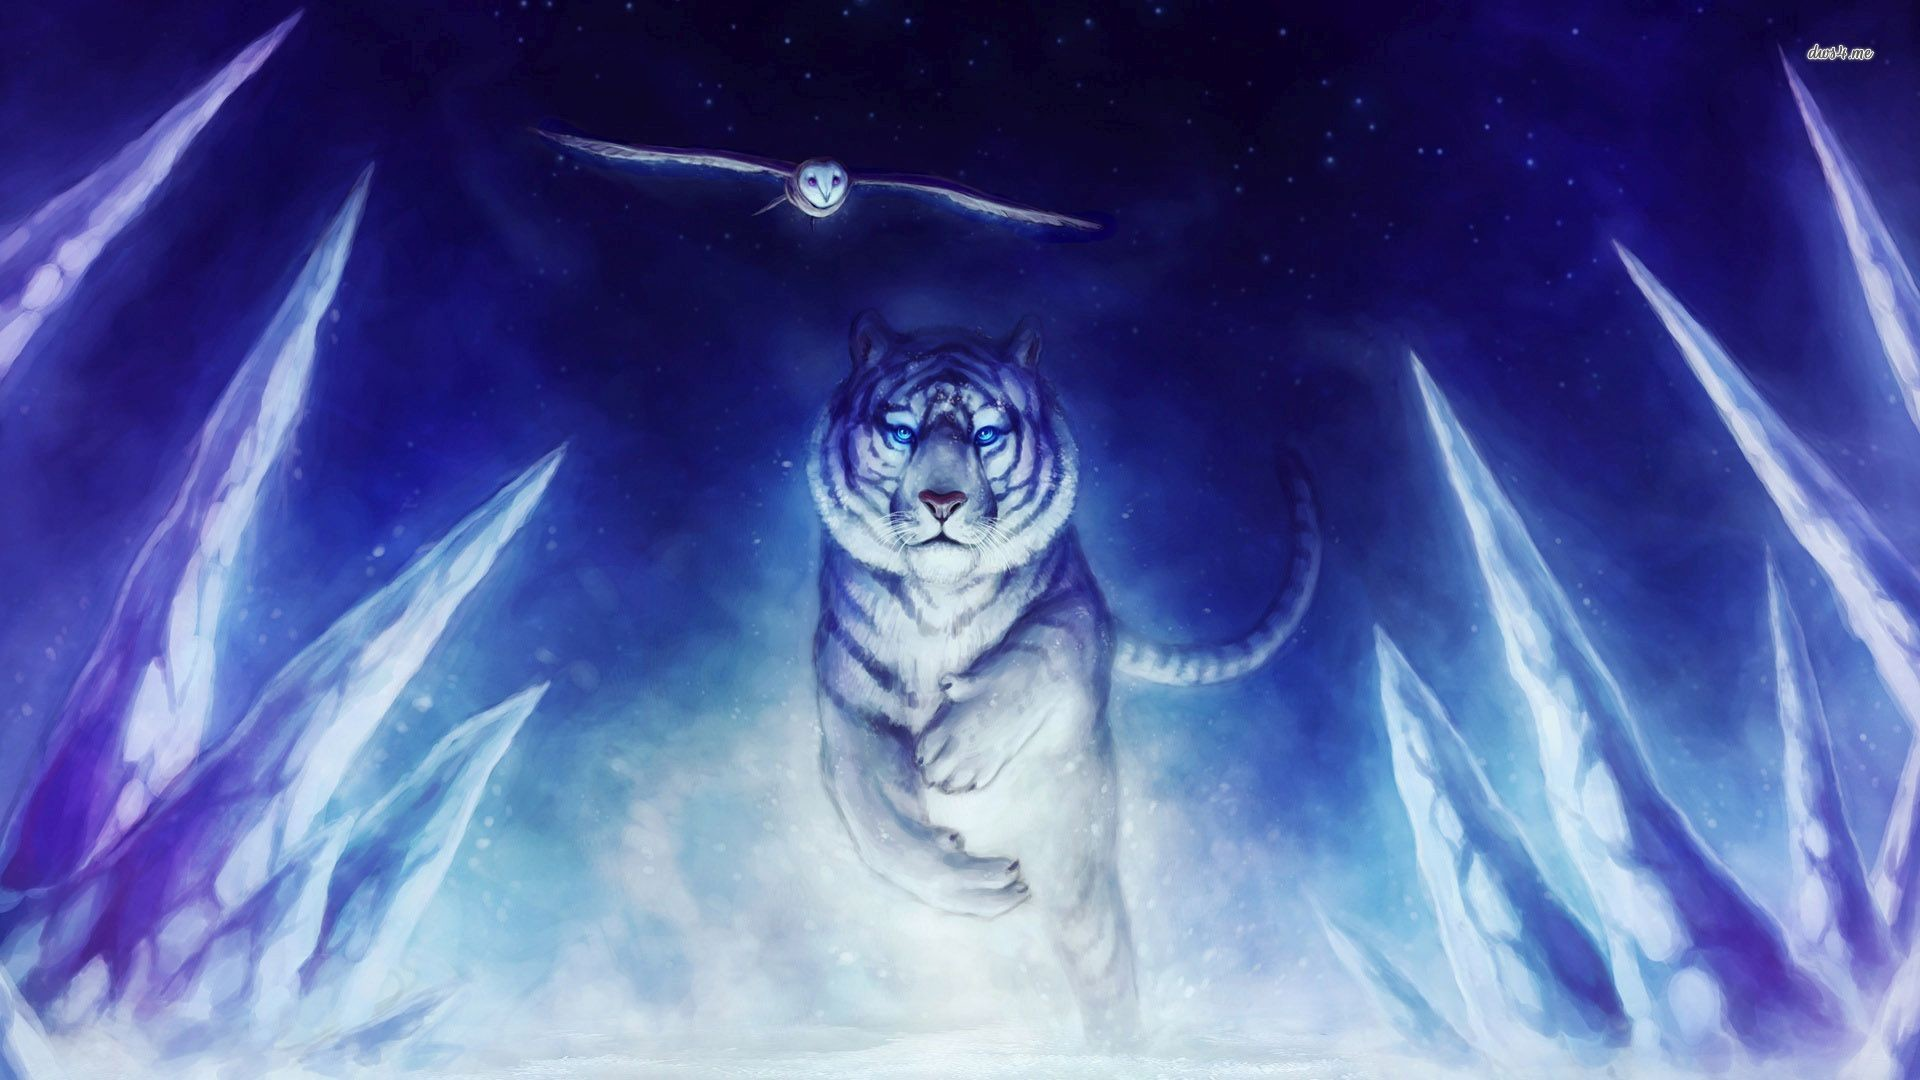 Res: 1920x1080, ... White Tiger wallpaper  ...